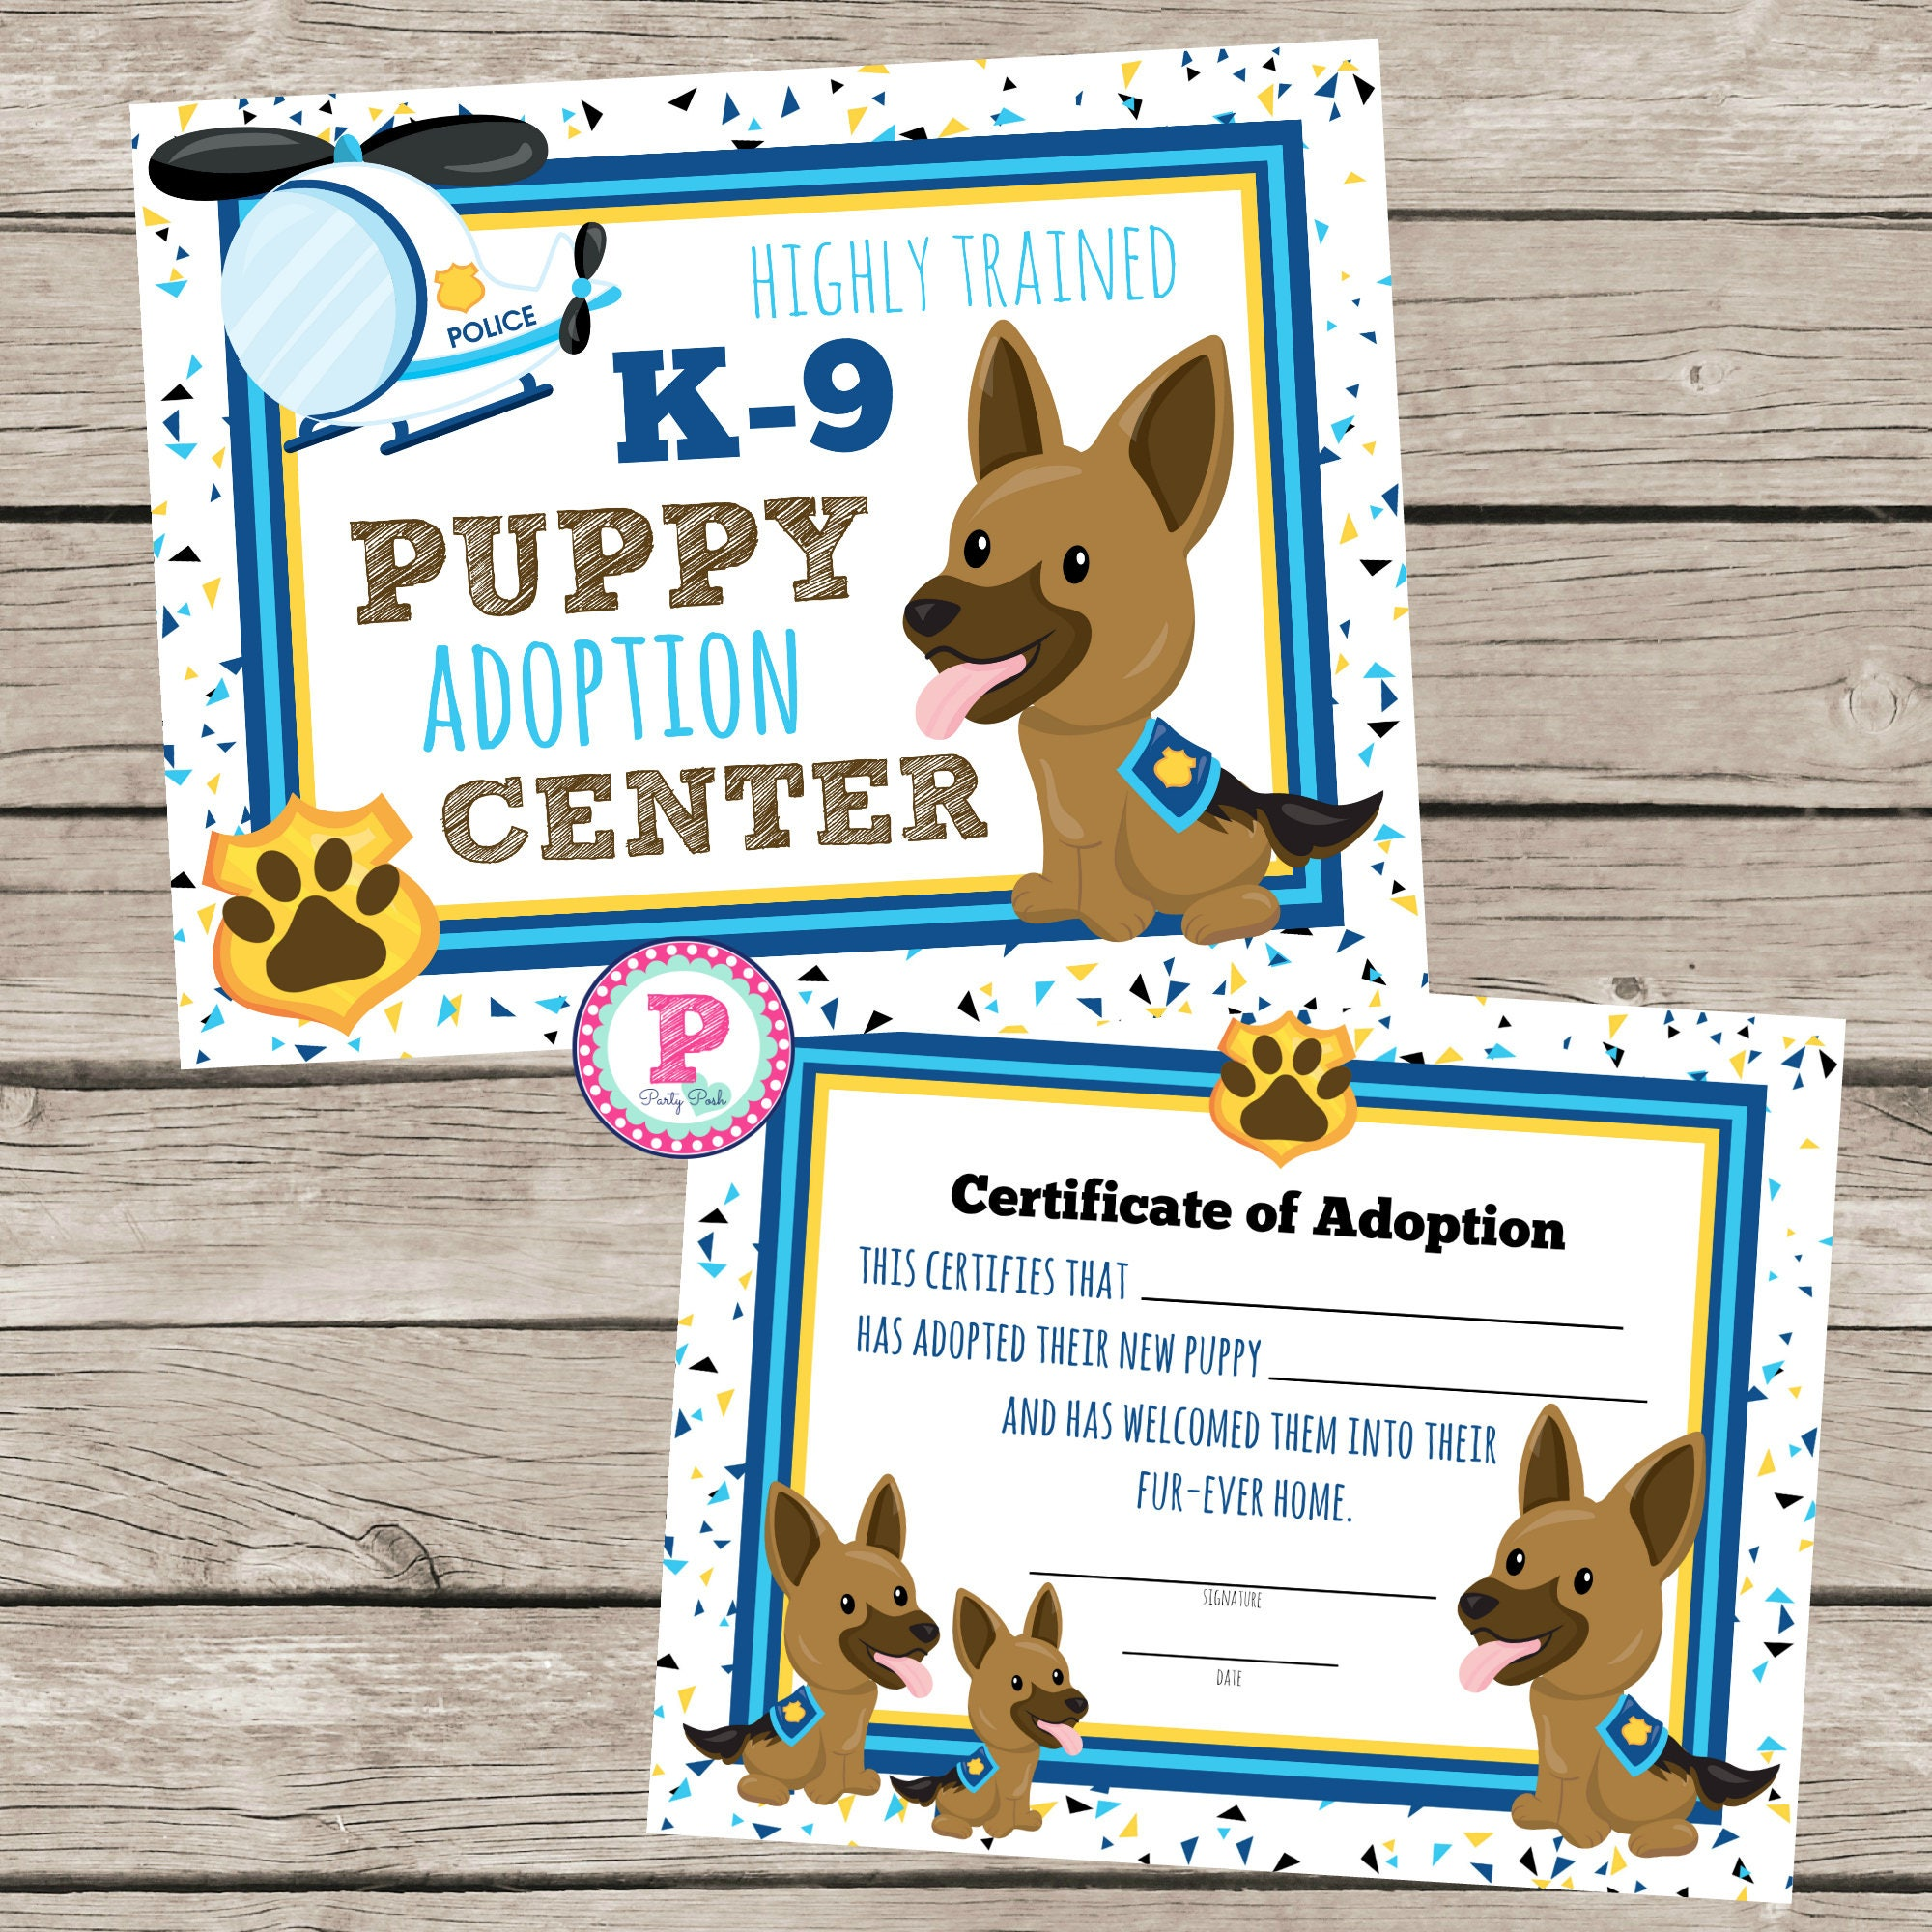 Puppy adoption certificate birthday party idea k 9 puppy adoption this is a digital file xflitez Gallery